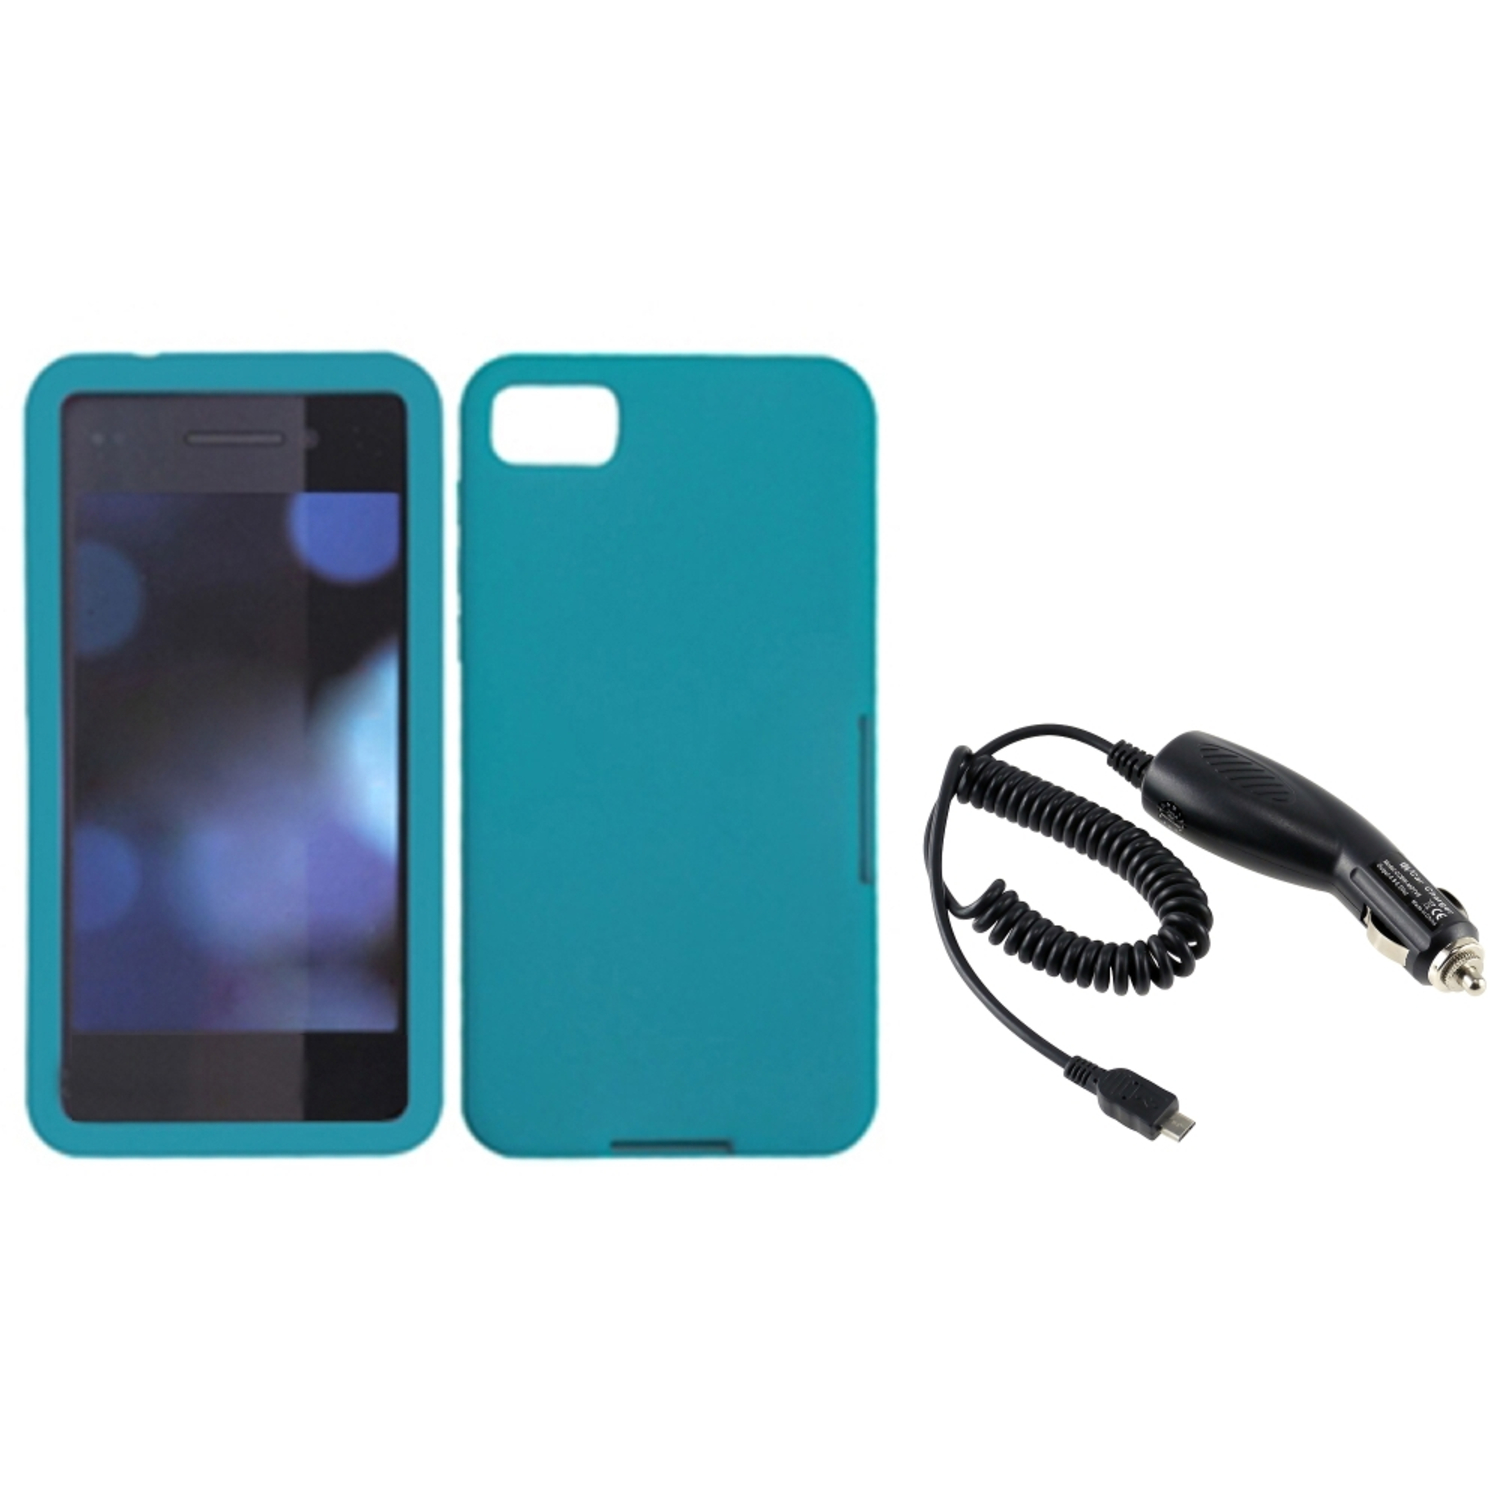 Insten Teal Green Silicone Solid Rubber Skin Cover Case+DC Car Charger For BlackBerry Z10